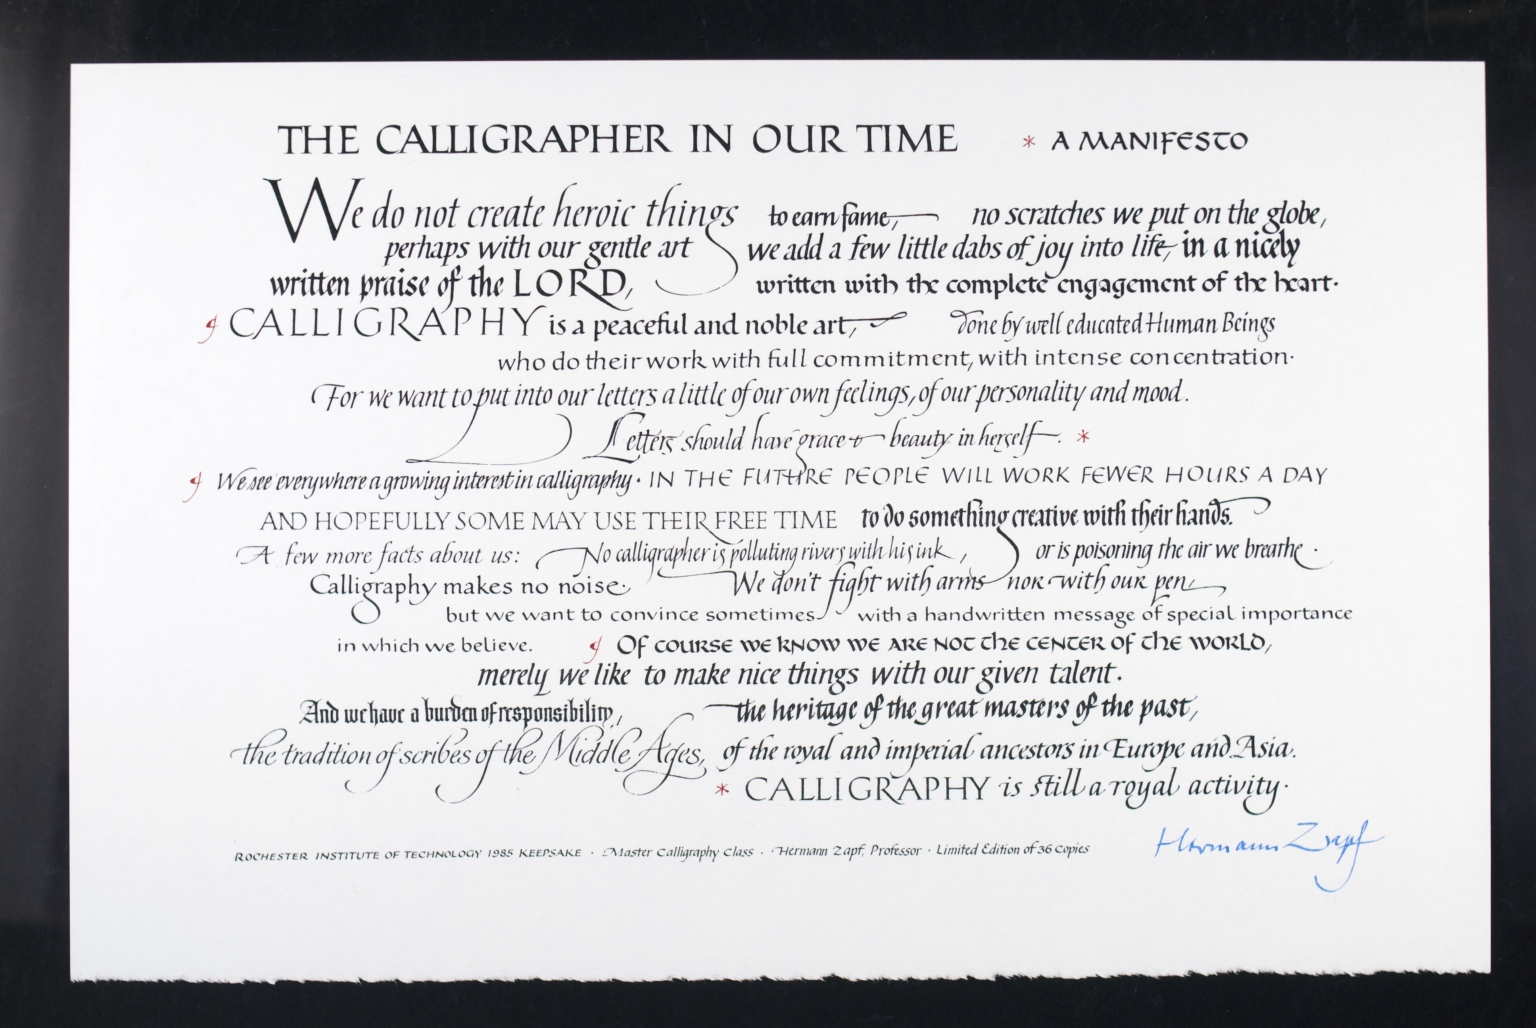 The Calligrapher In Our Time, A Manifesto